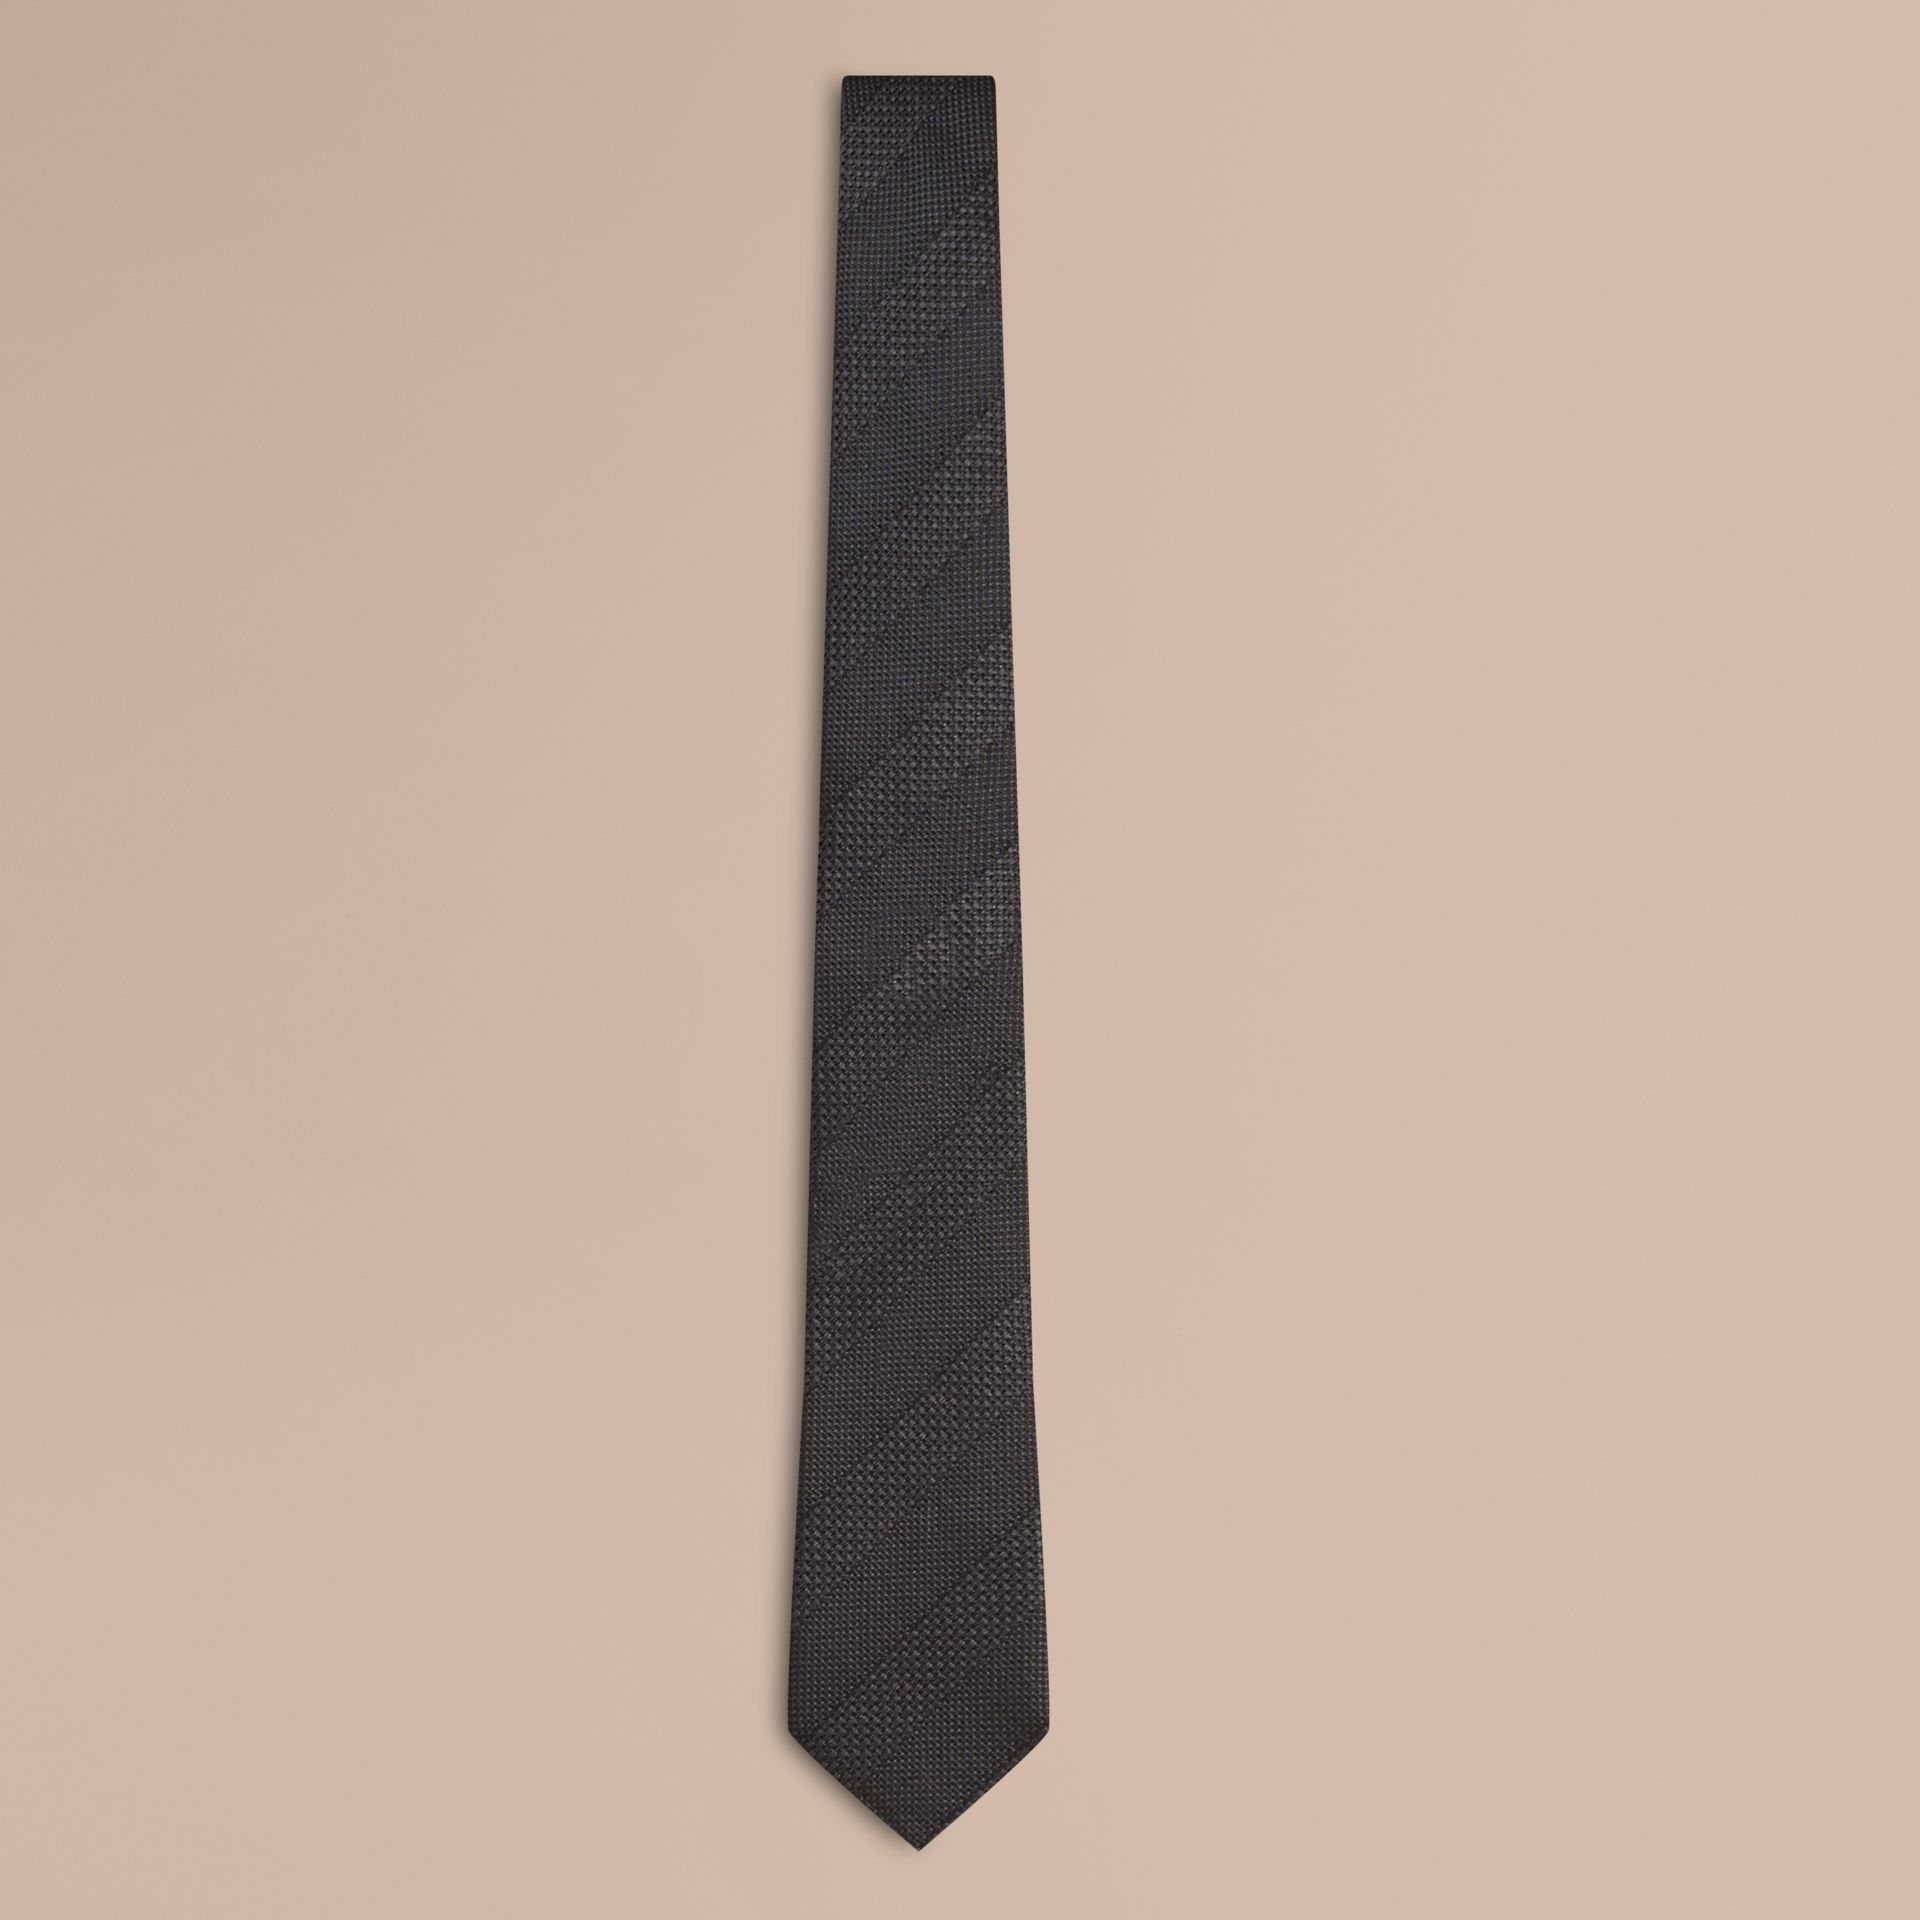 Charcoal Modern Cut Striped Silk Jacquard Tie Charcoal - gallery image 1